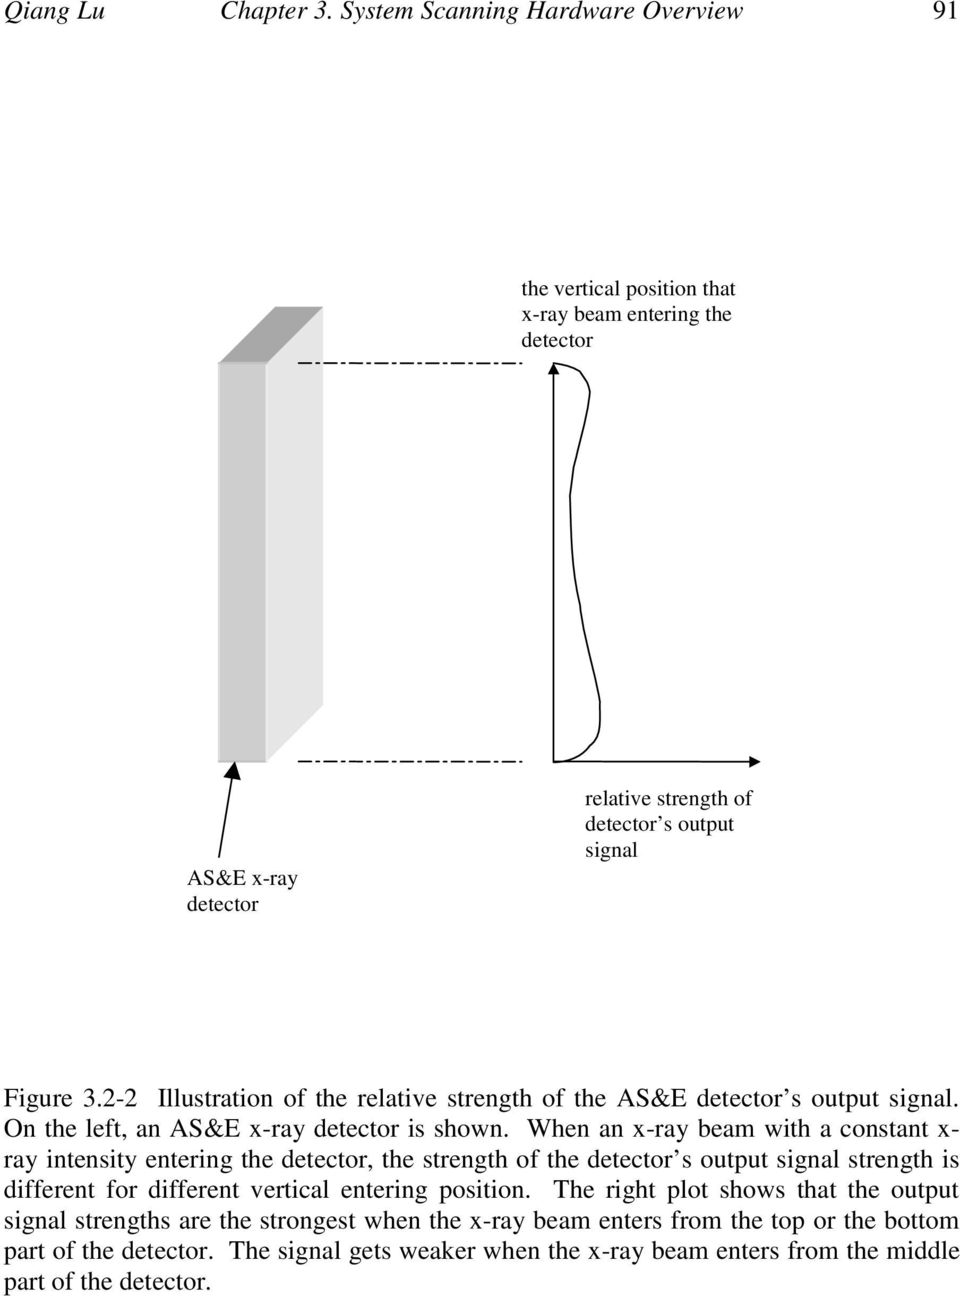 2-2 Illustration of the relative strength of the AS&E detector s output signal. On the left, an AS&E x-ray detector is shown.